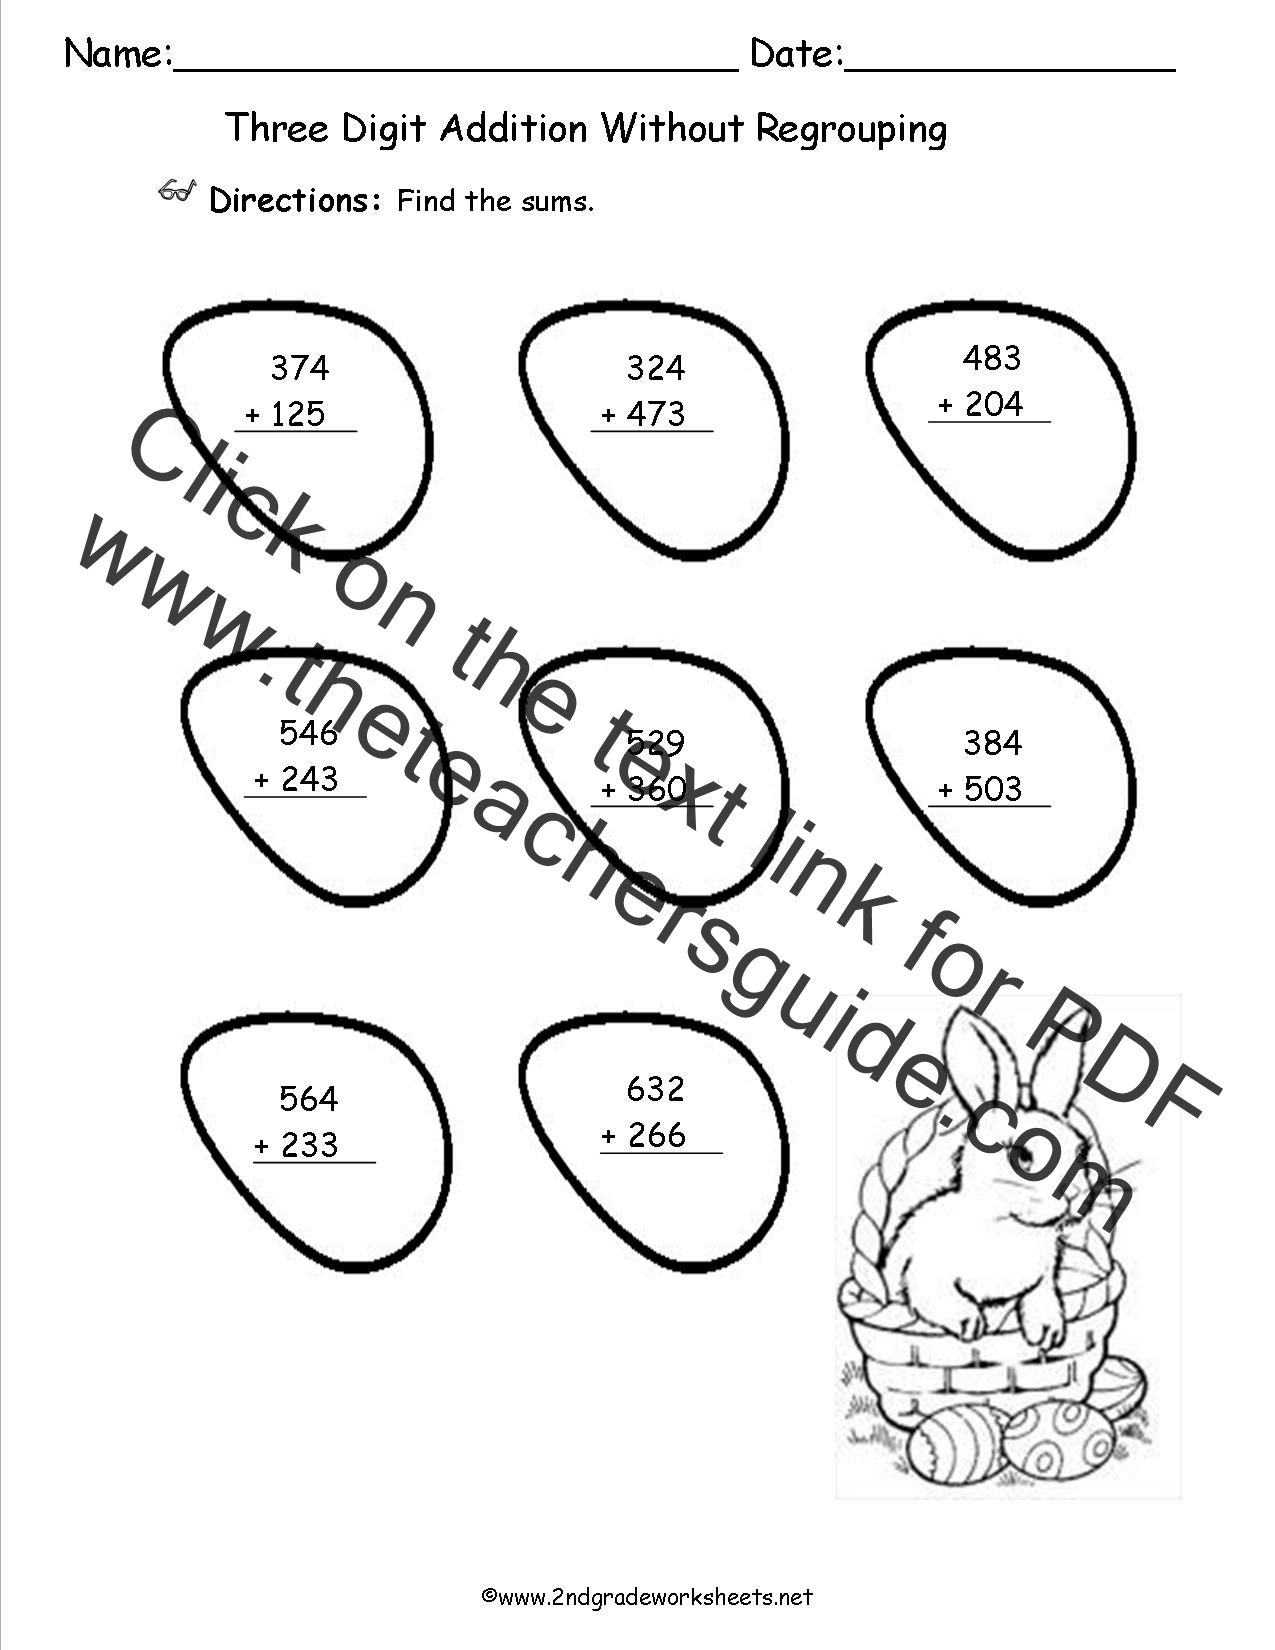 worksheet Three Digit Addition And Subtraction With Regrouping easter worksheets and printouts three digit addition without regrouping